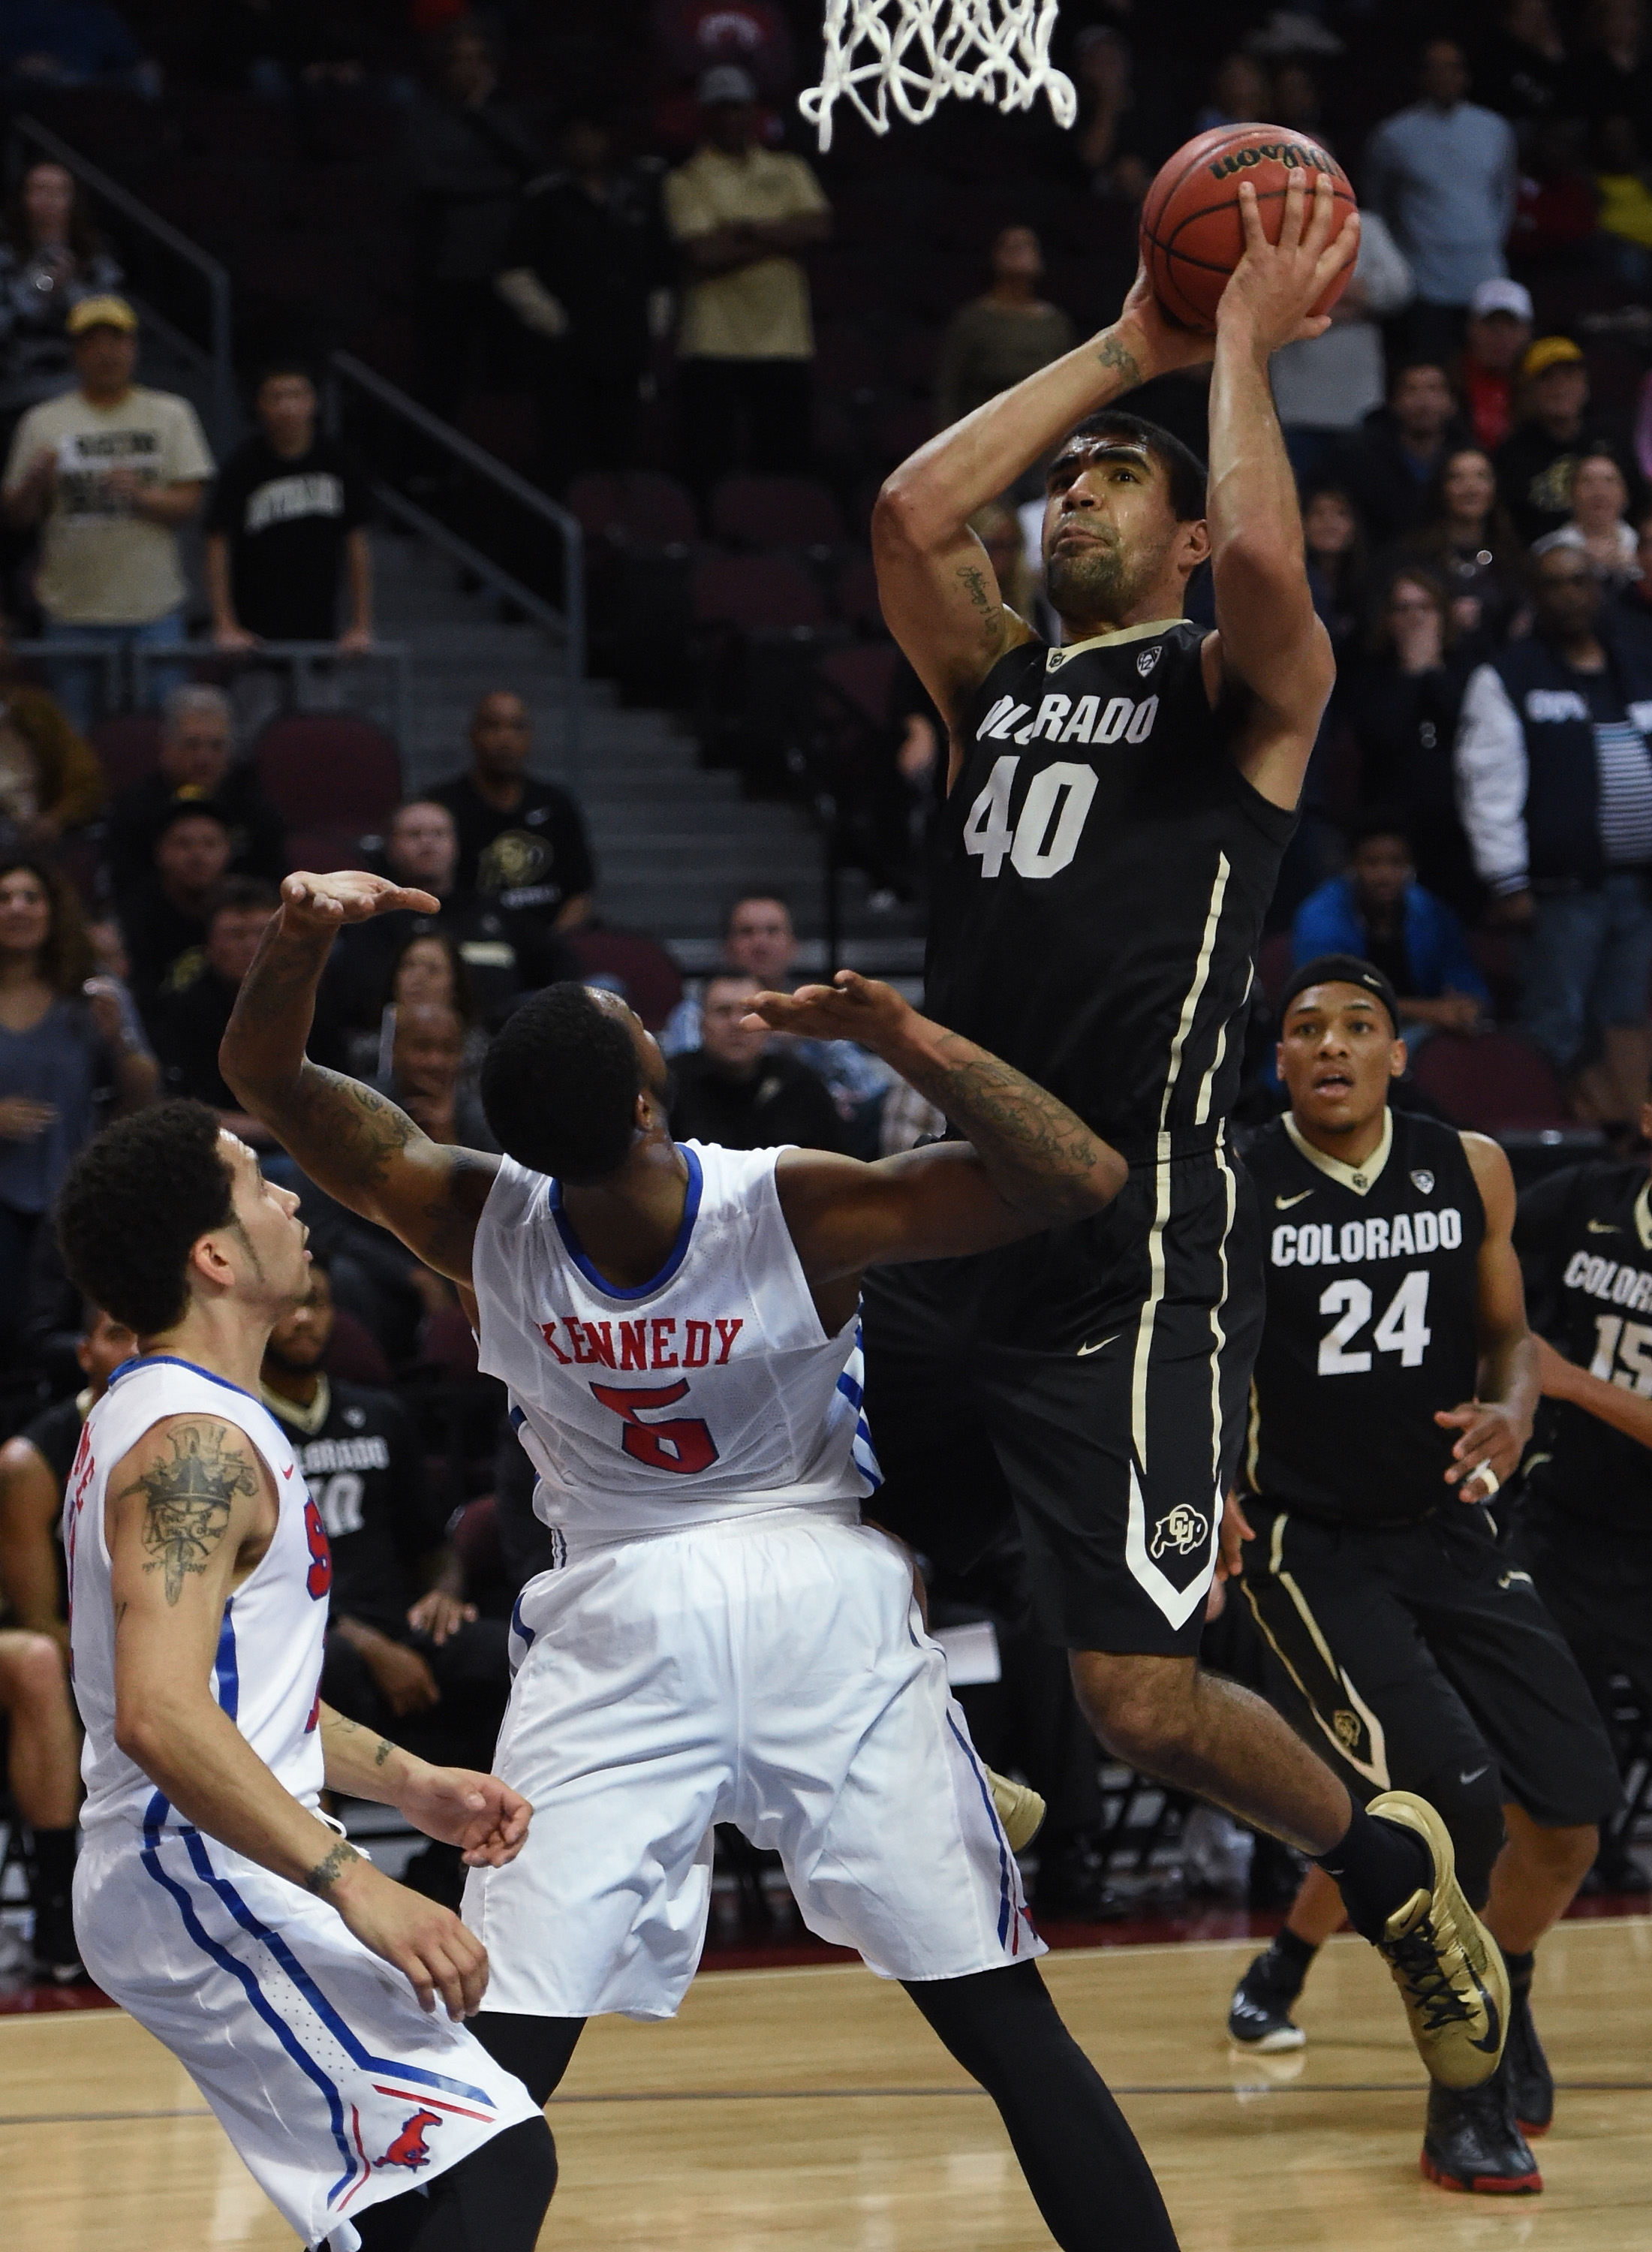 Josh Scott of the Colorado Buffaloes shoots against the Southern Methodist Mustangs during the championship game of the 2015 Continental Tire Las Vegas Classic basketball tournament at the Orleans Arena on Dec. 23, 2015 in Las Vegas. (credit: Ethan Miller/Getty Images)